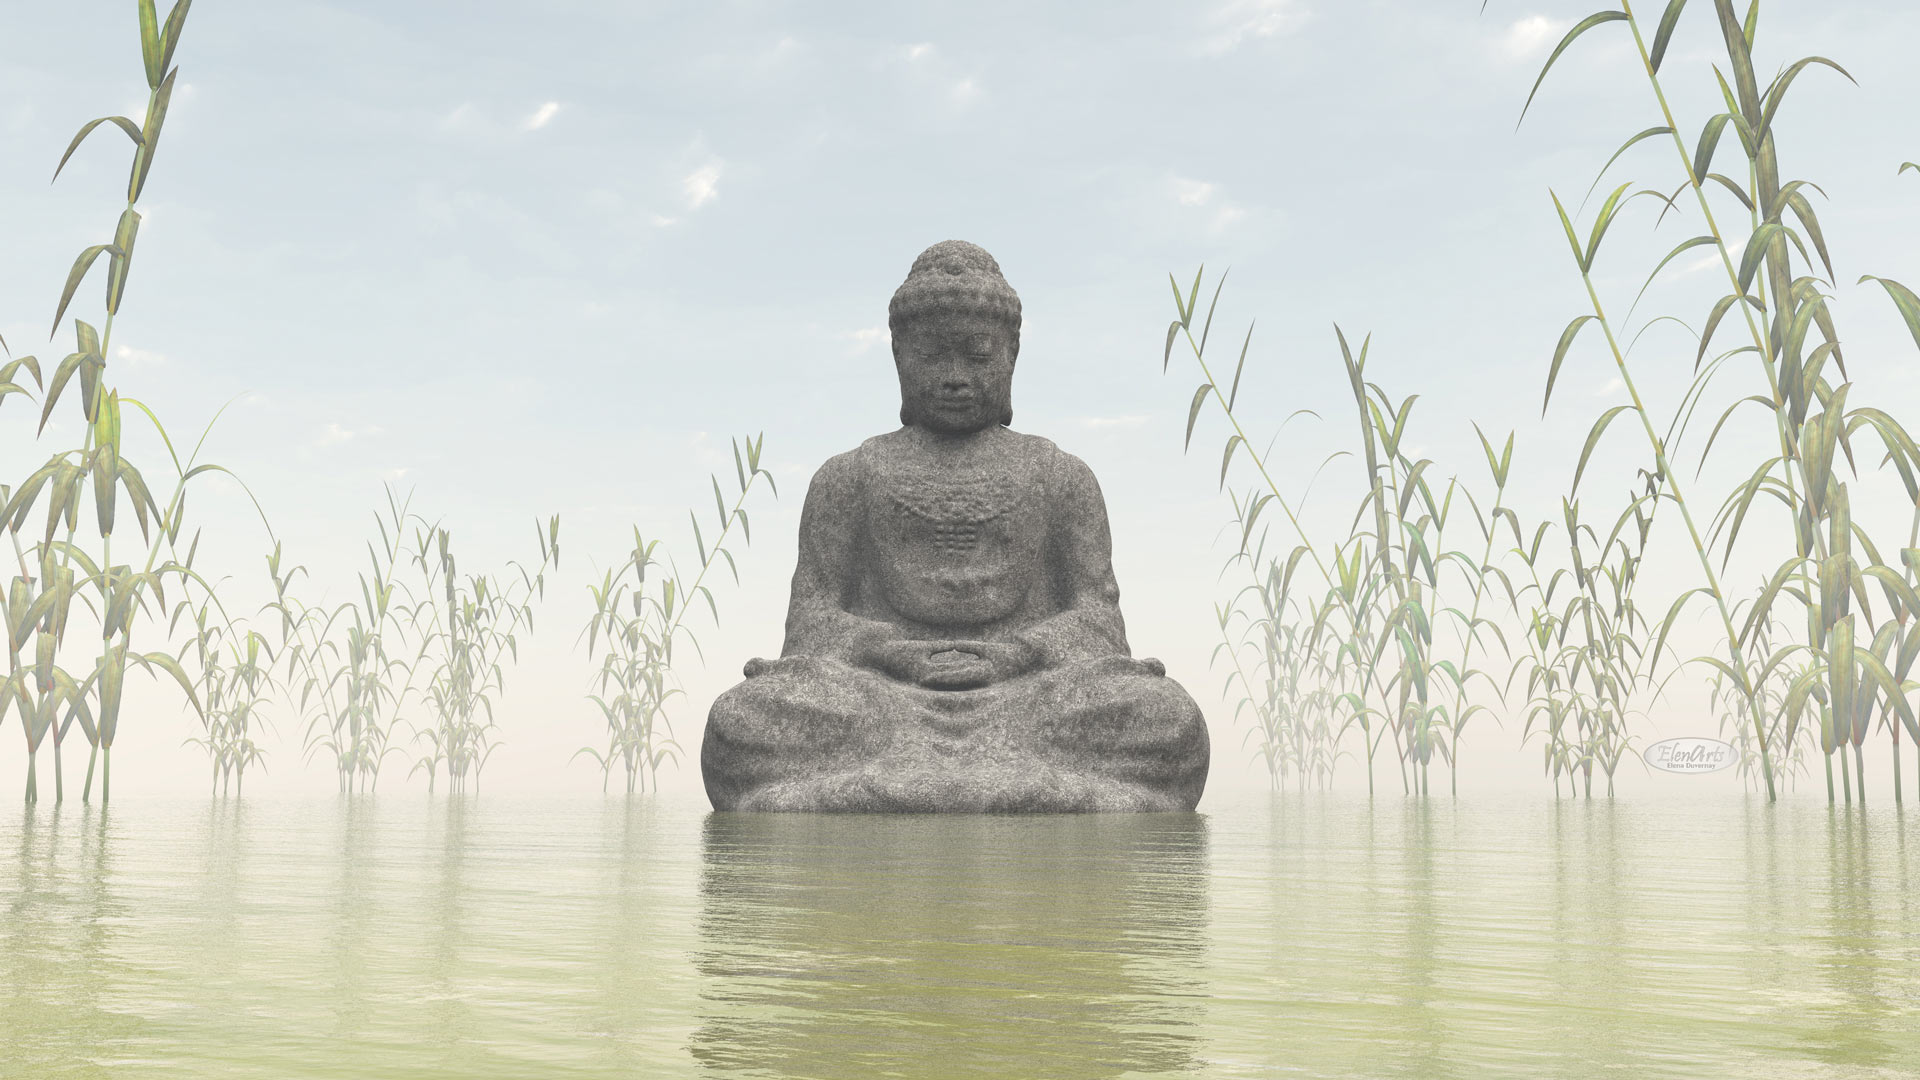 Stone buddha meditating next to bamboos by morning light – 3D render